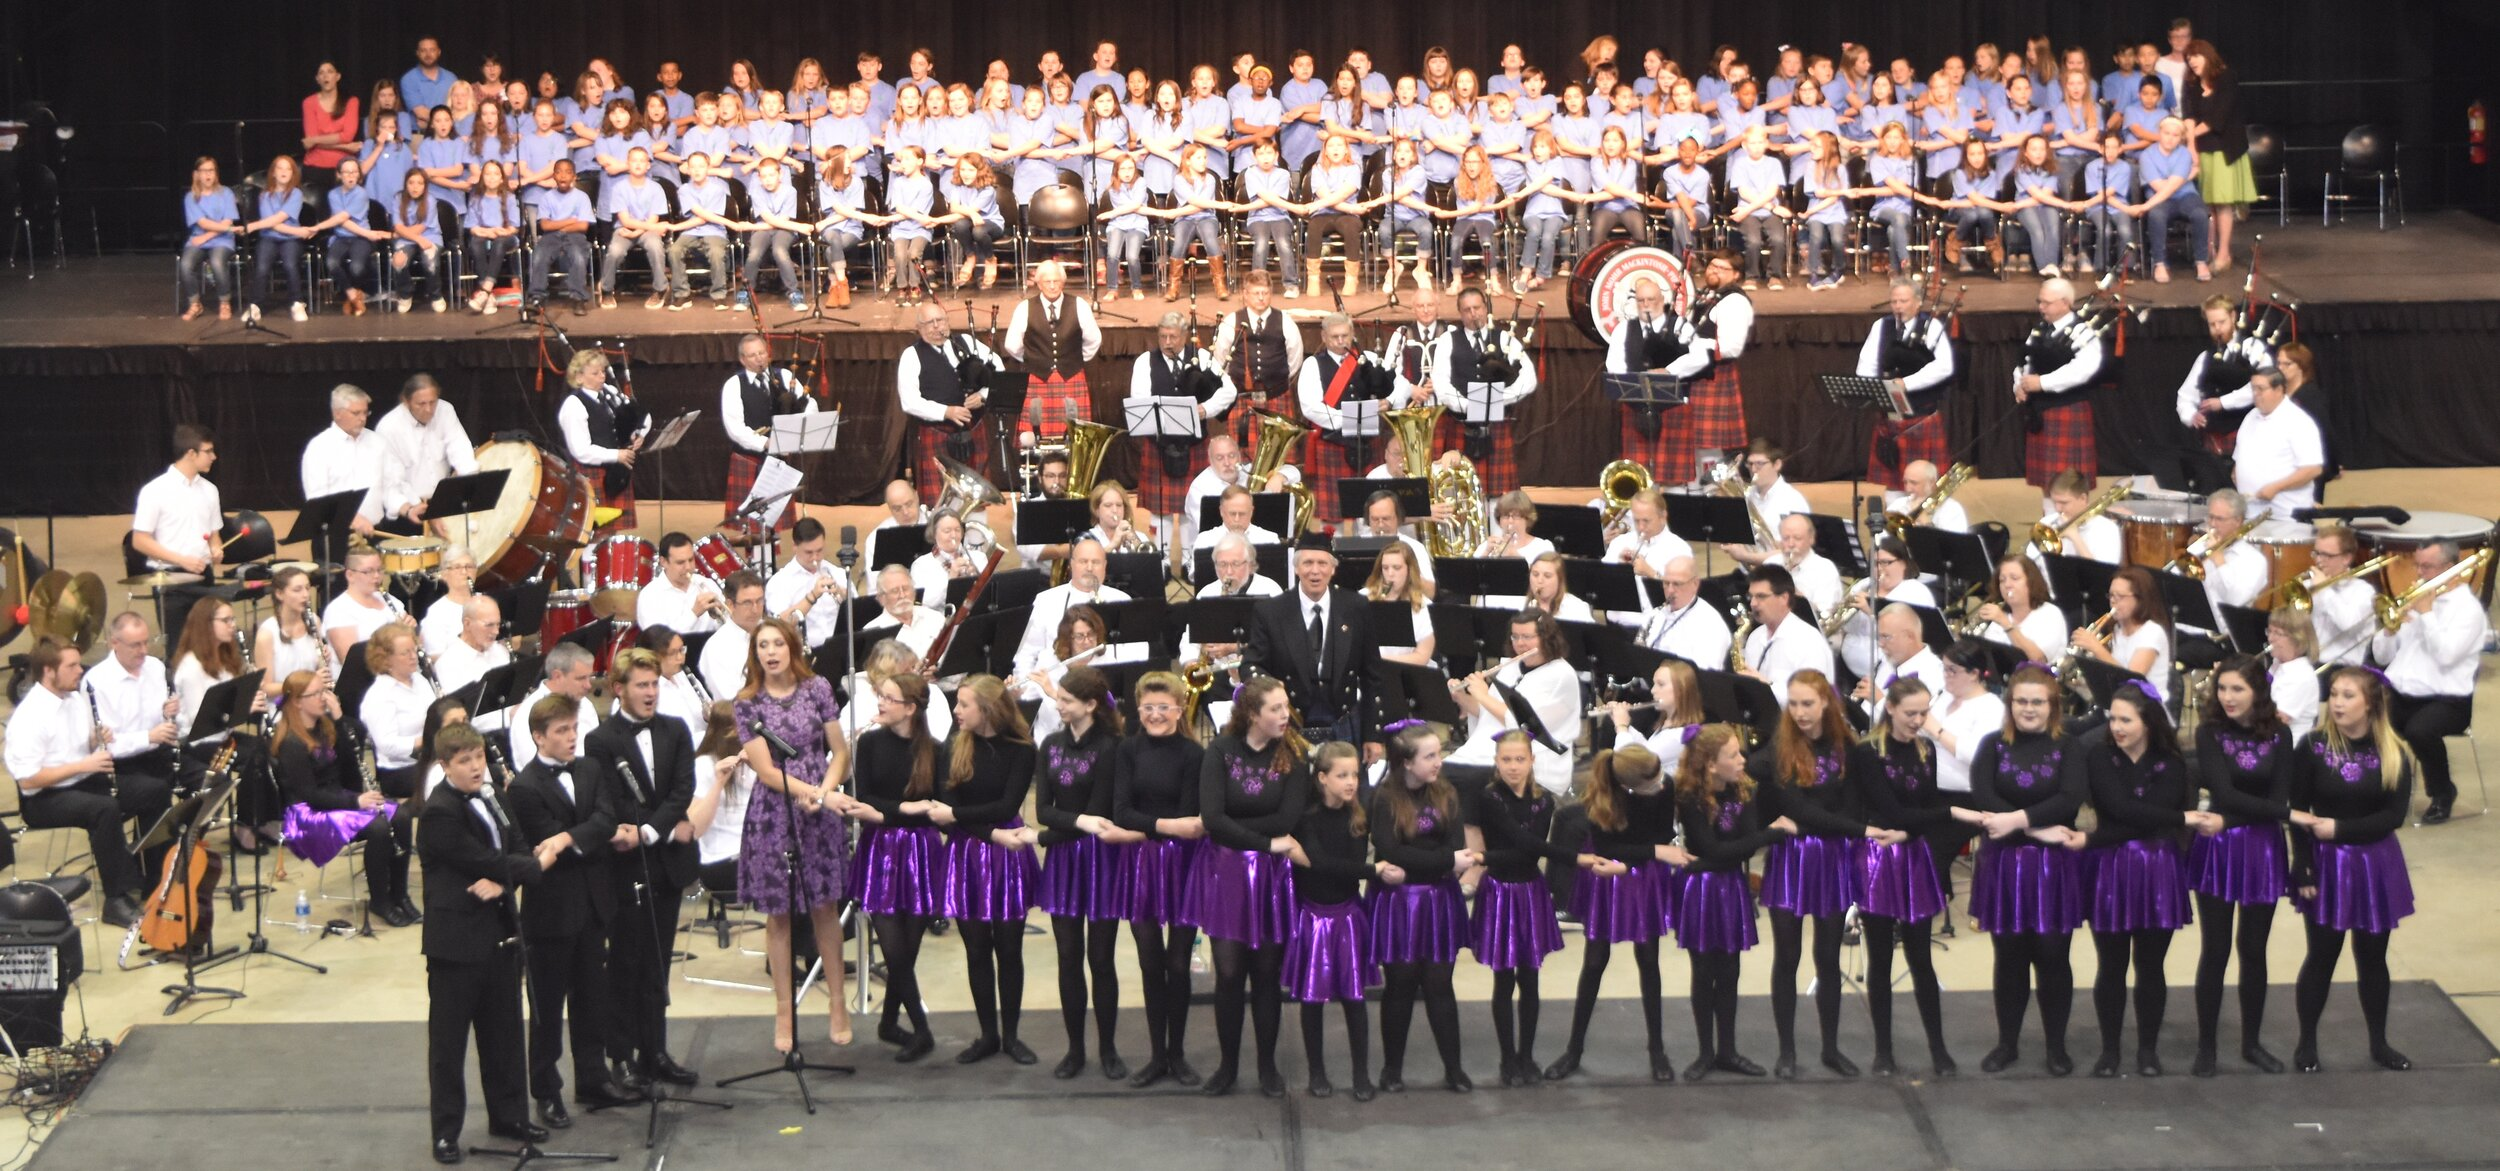 """04/18/2020 7:30pm Forum River Center    """"Across the Big Pond XX""""   Gala Celtic variety show featuring NW GA Winds, bagpipers, dancers, singers, and much more!  *Ticketed Event*"""